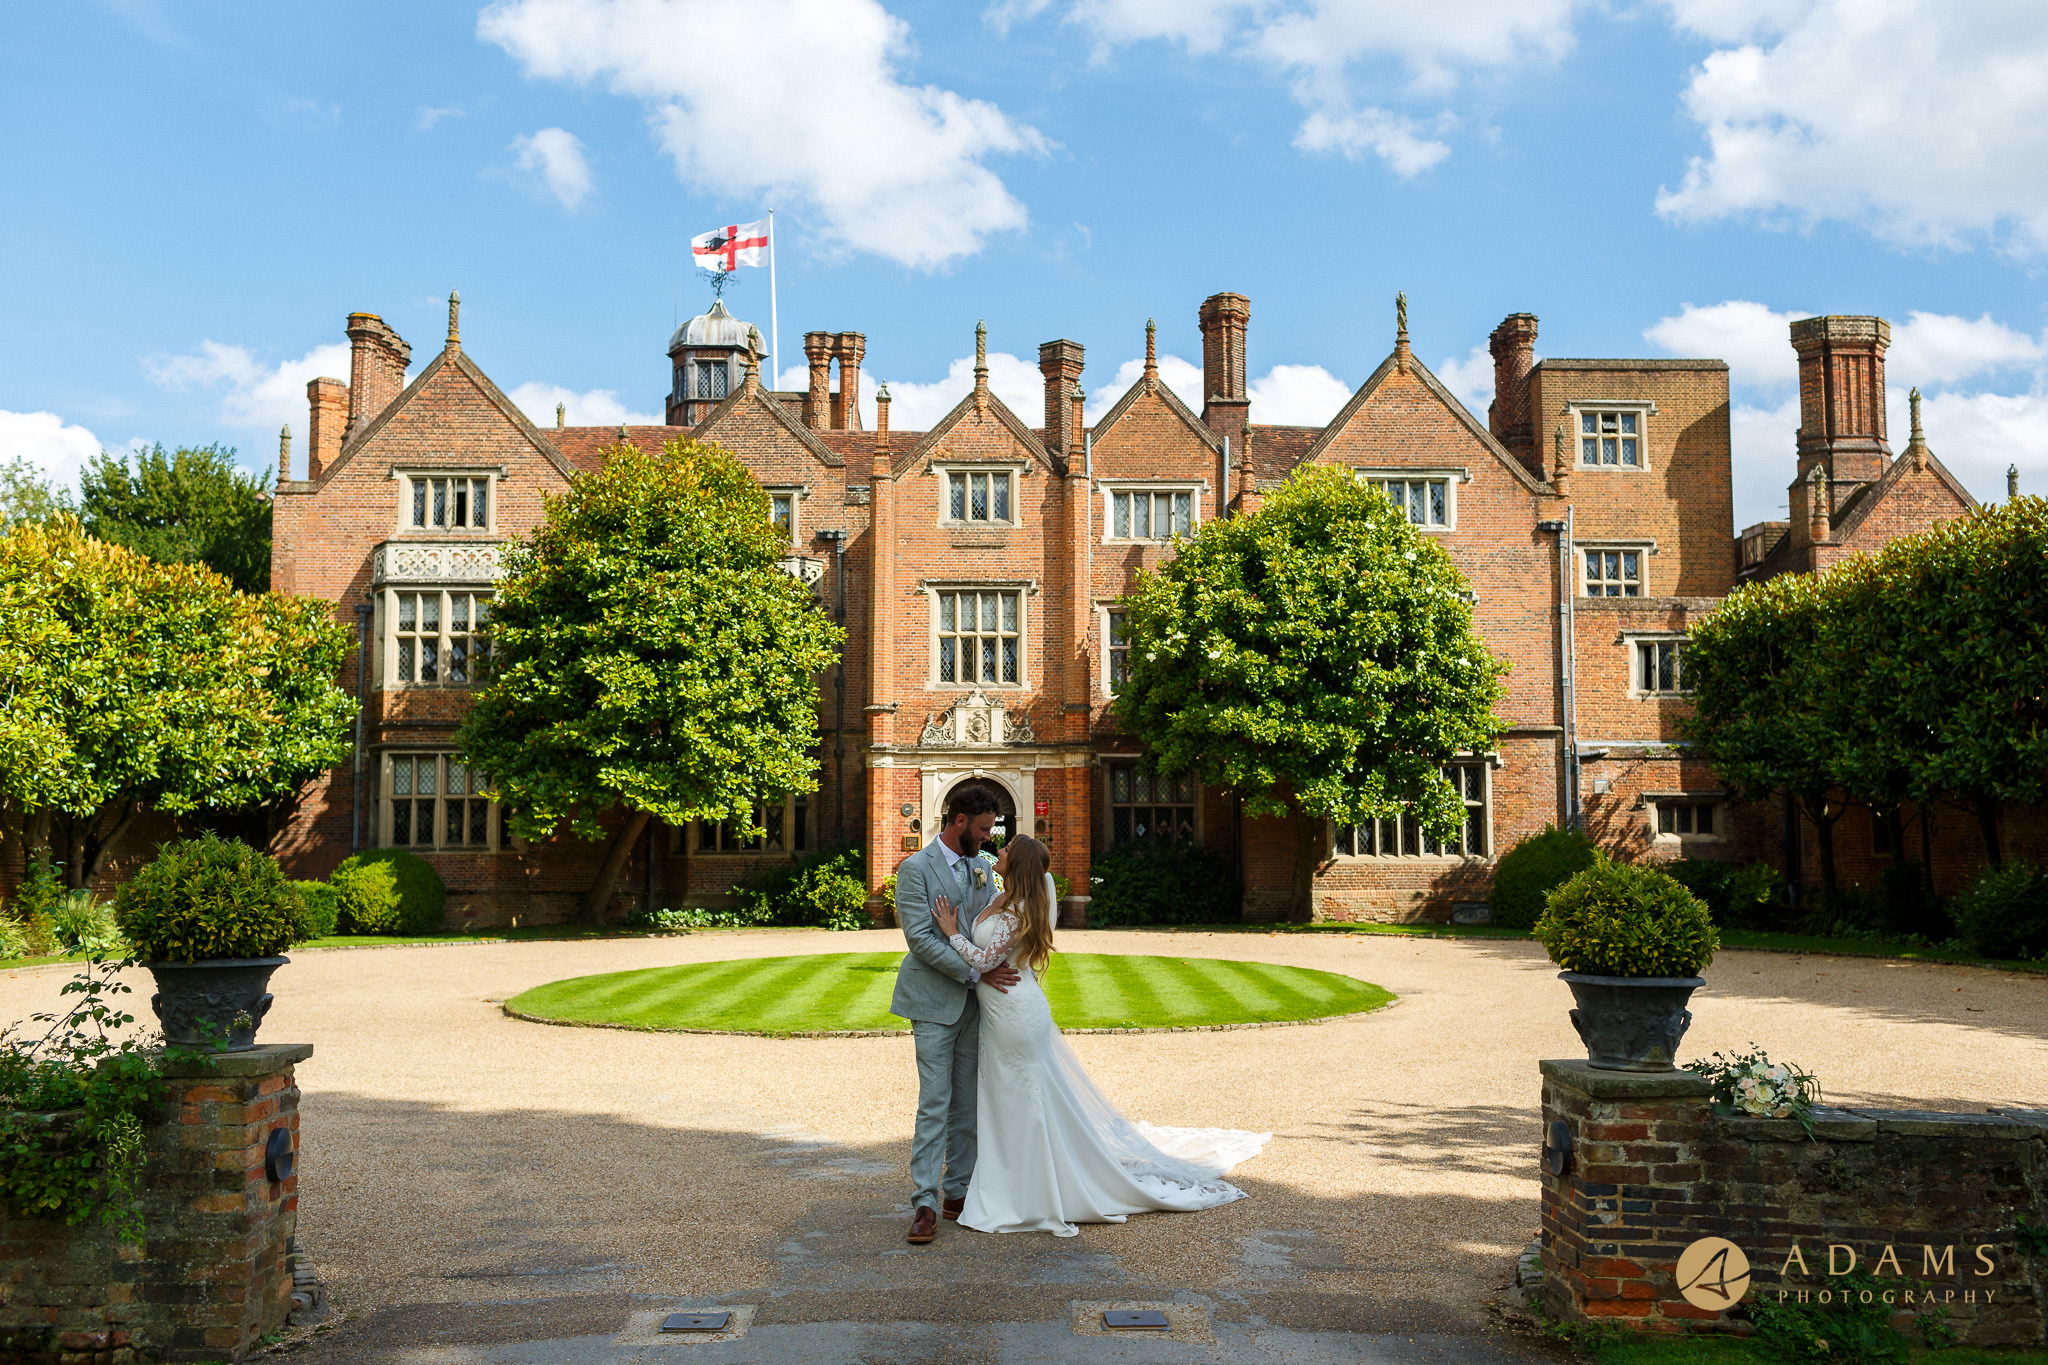 Married couple posing in front of the Great Fosters Hotel